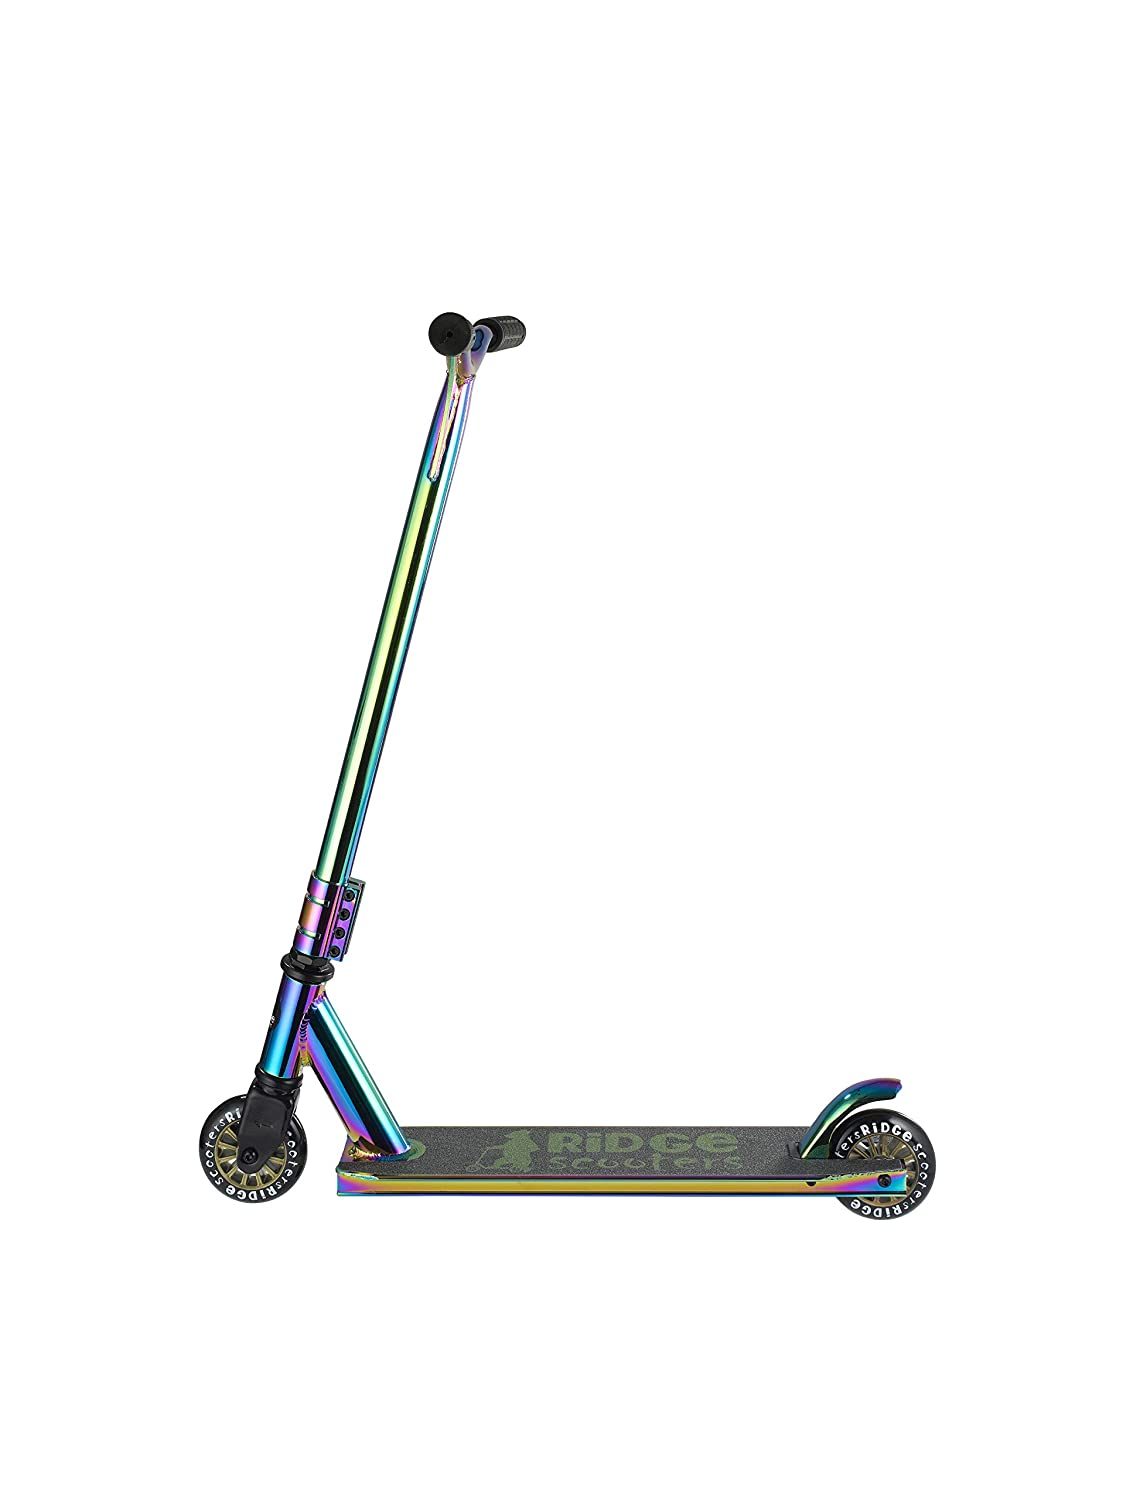 Ridge Scooters XT Pro 100 Neochrome Series - Complete Stunt Scooter